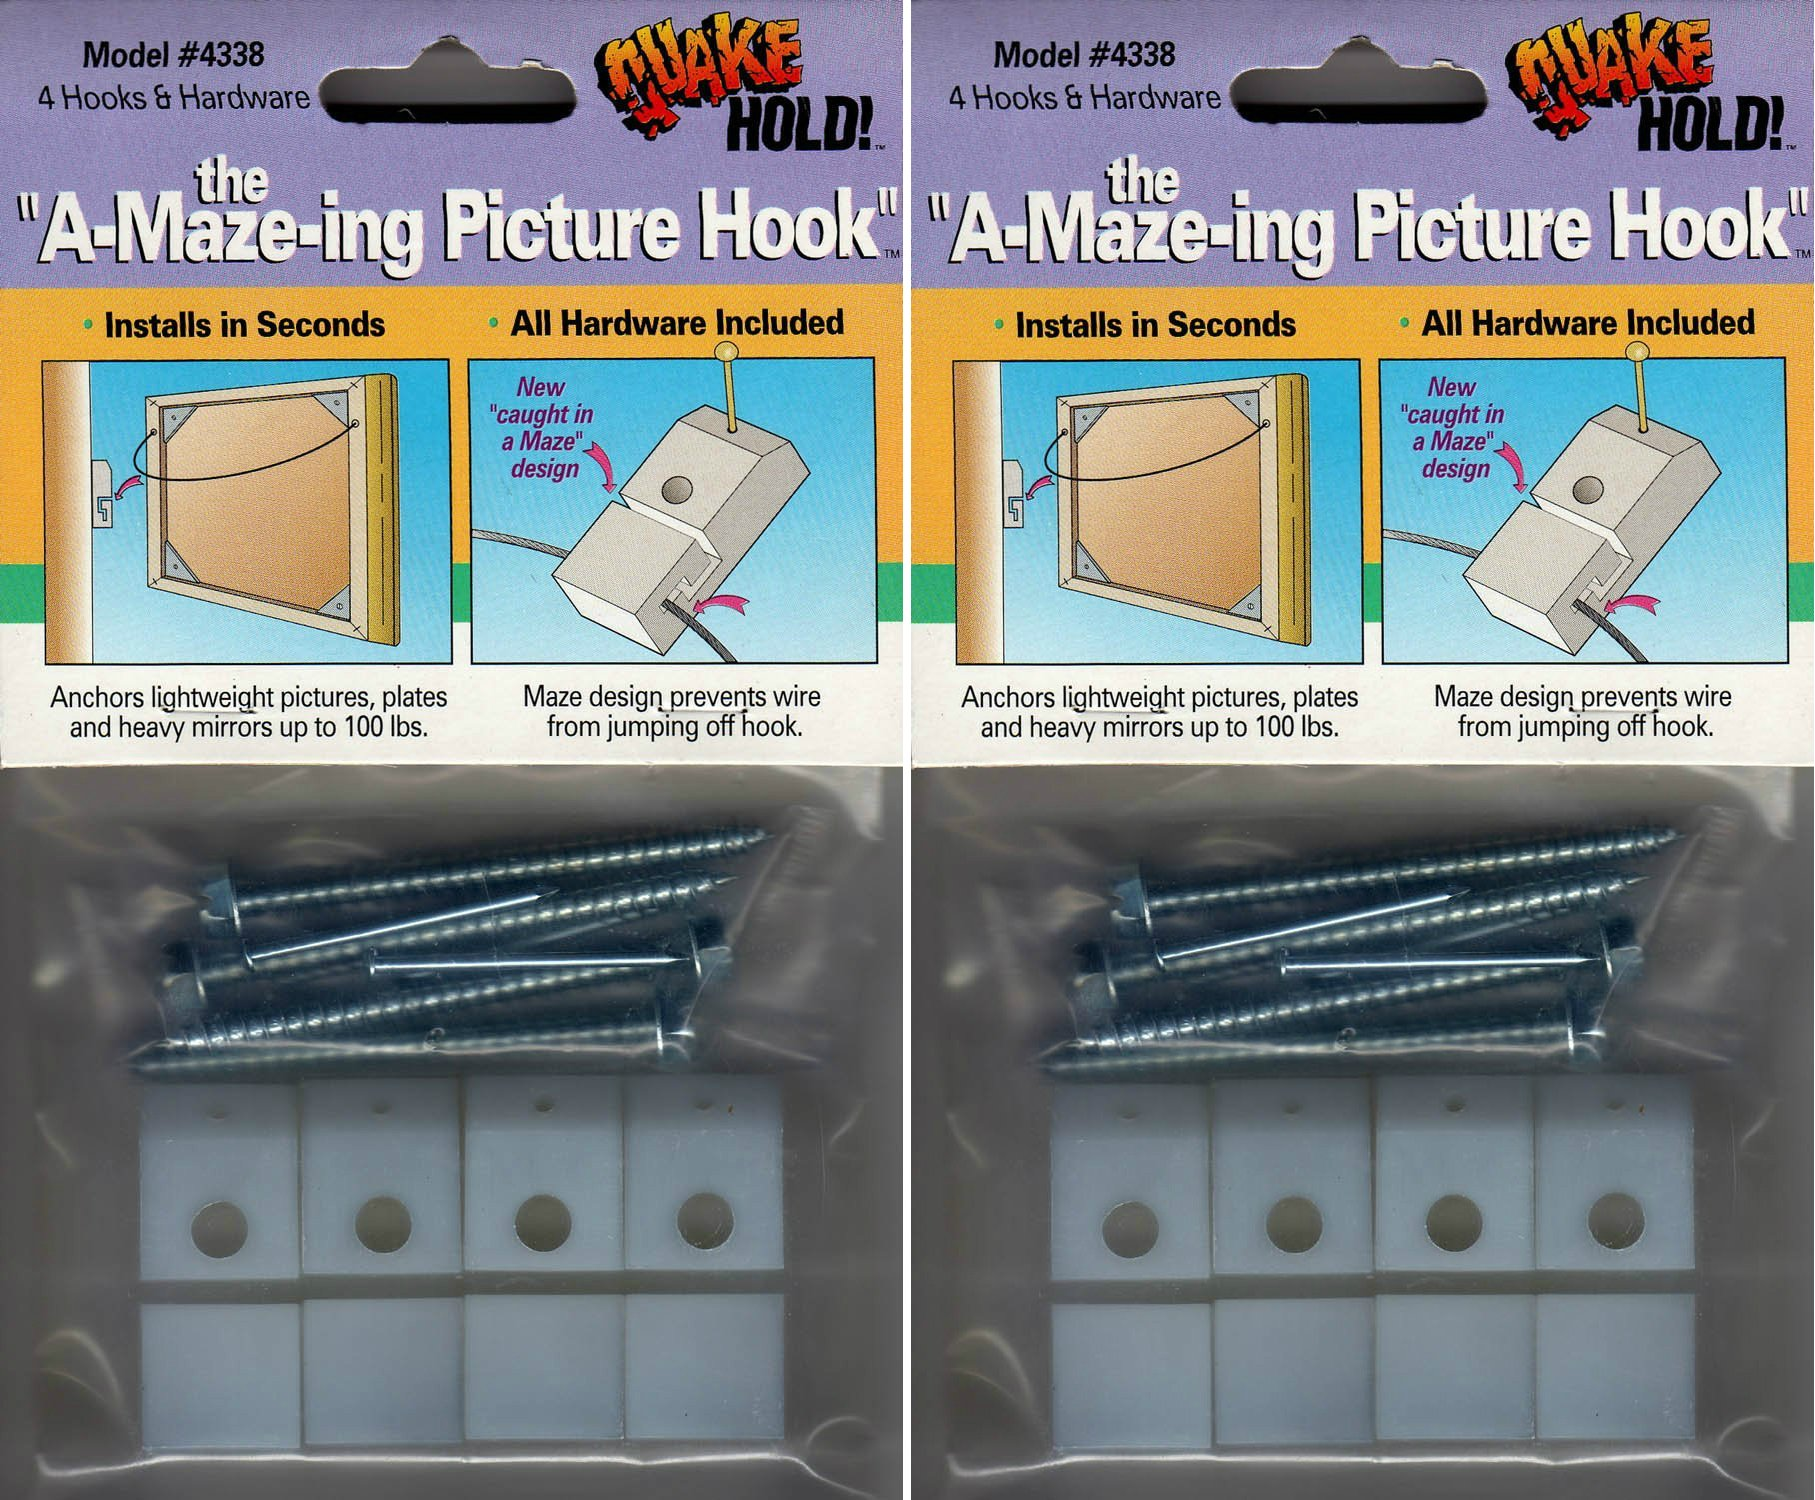 Quakehold! 4338 the A-Maze-ing Picture Hook (2-Pack)